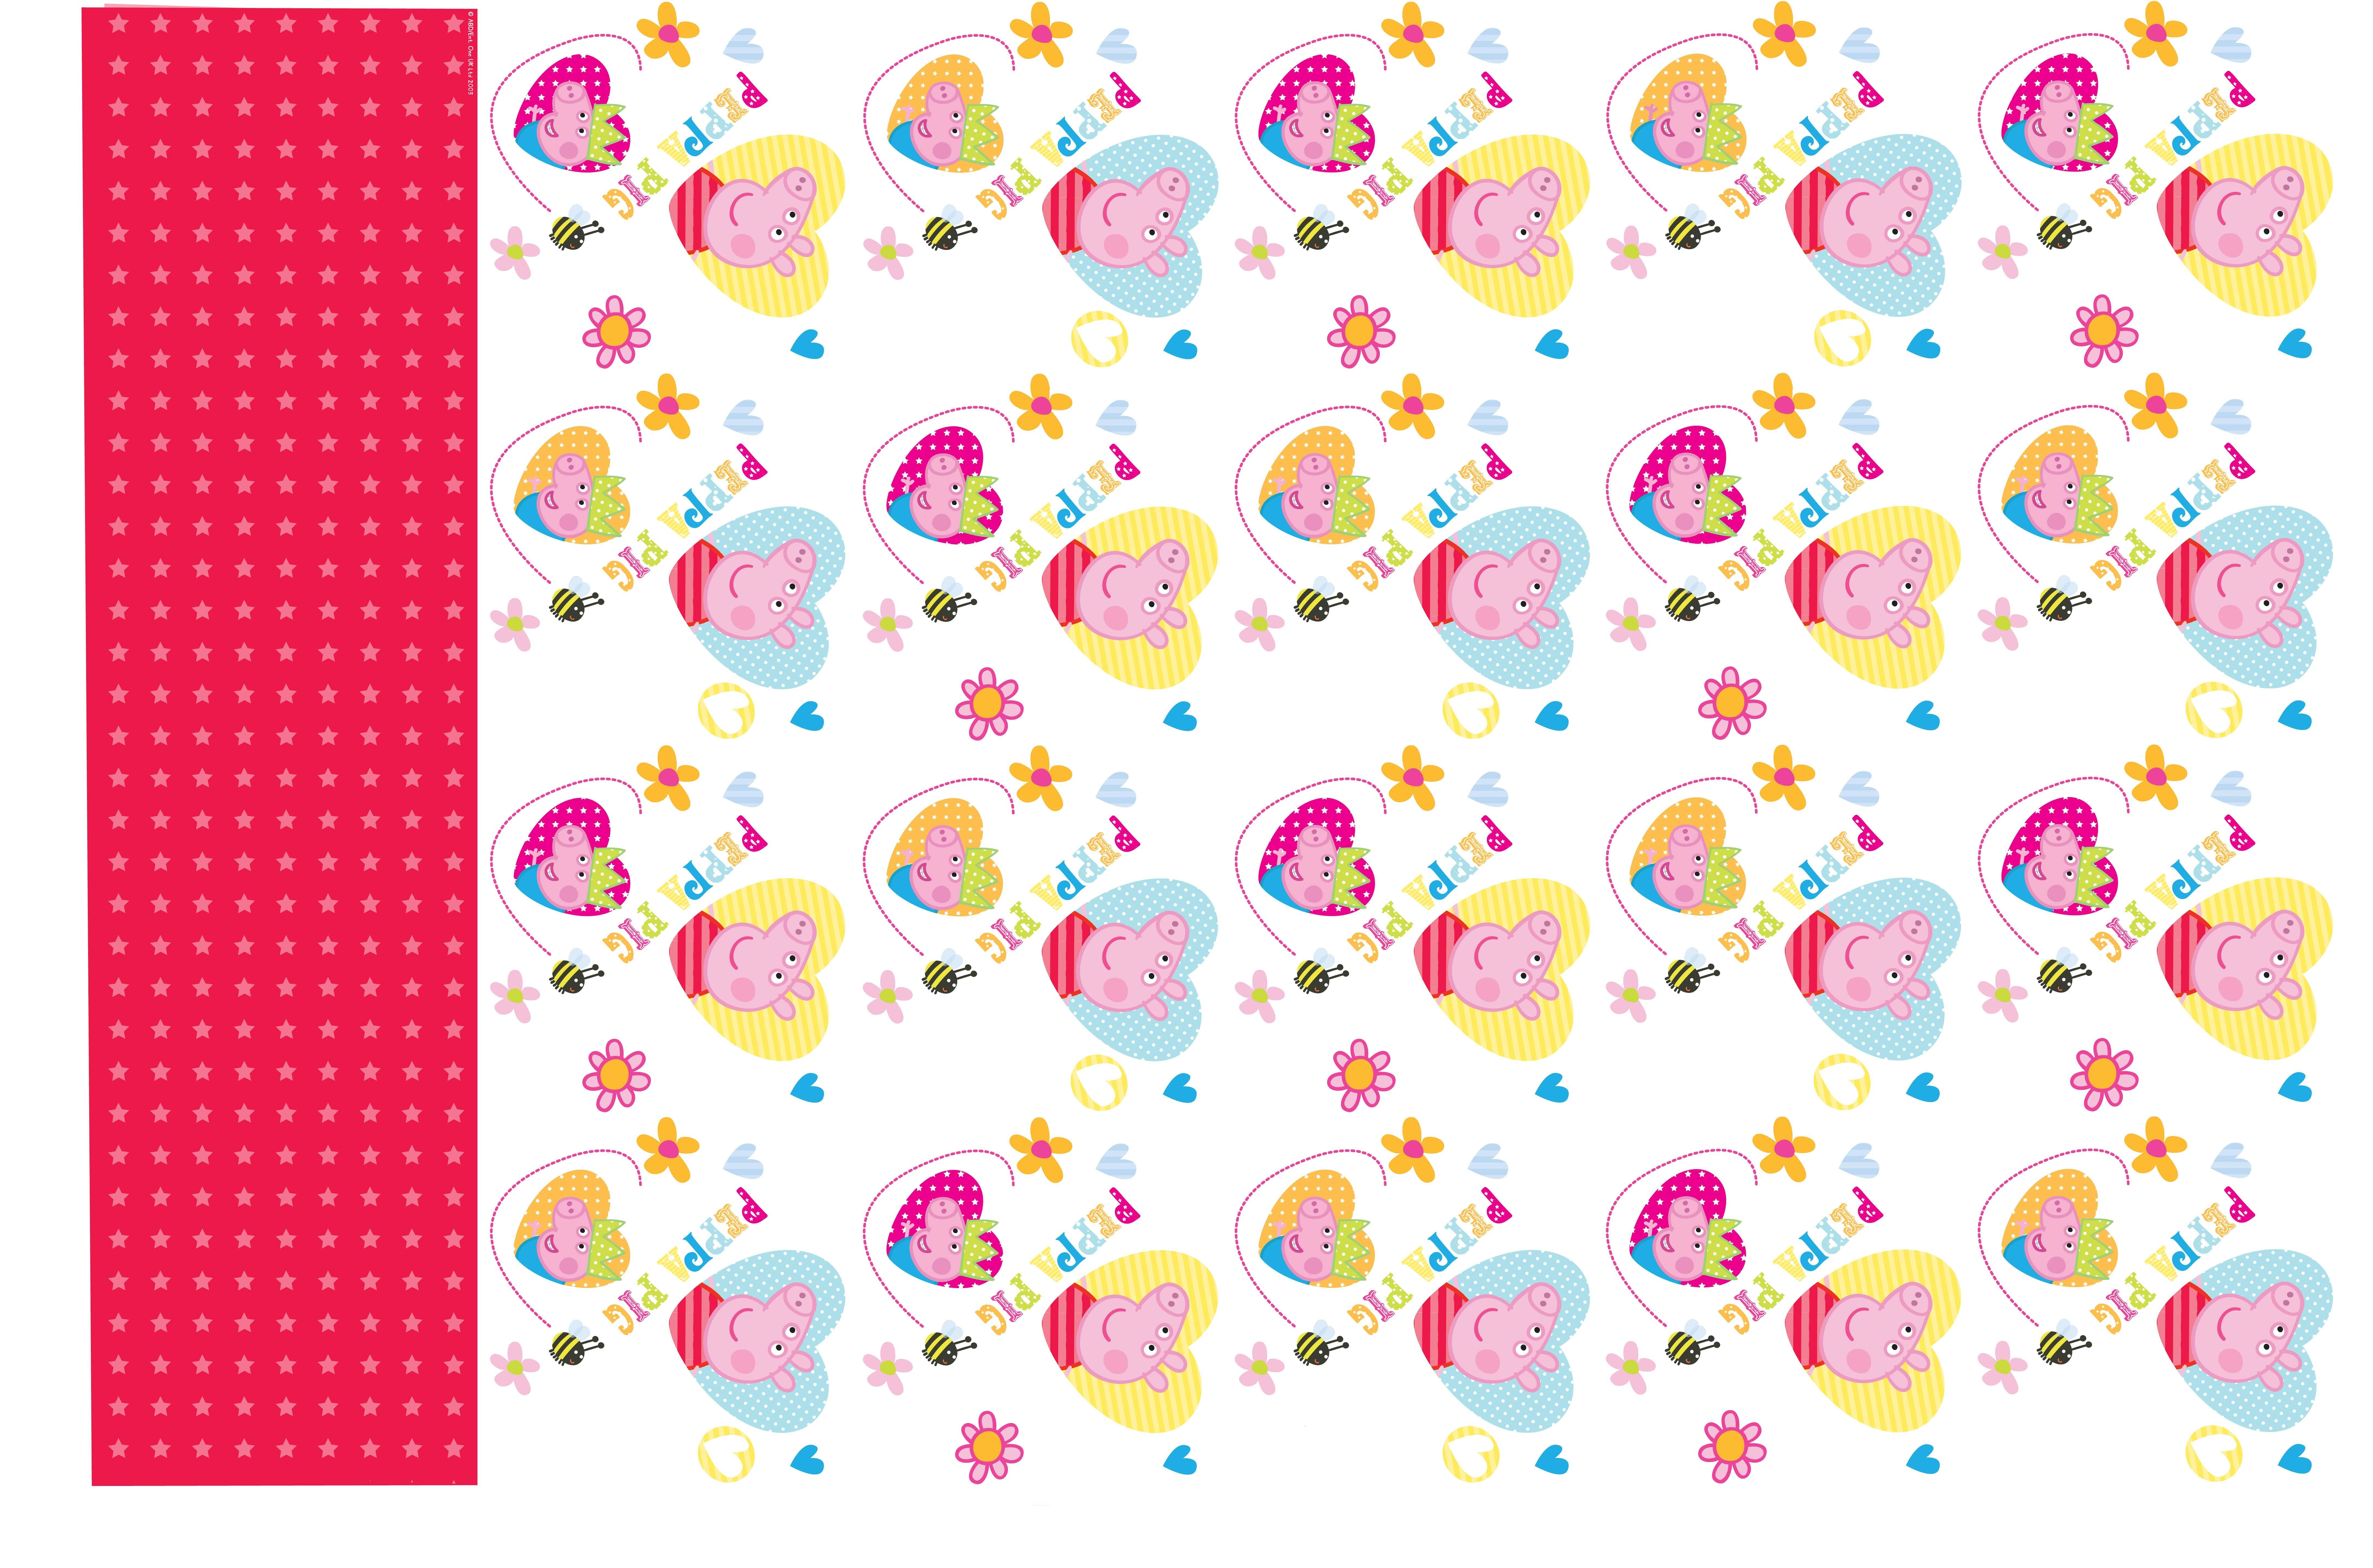 Burberry Wallpaper Iphone X Peppa Pig Wallpaper Birthday Images